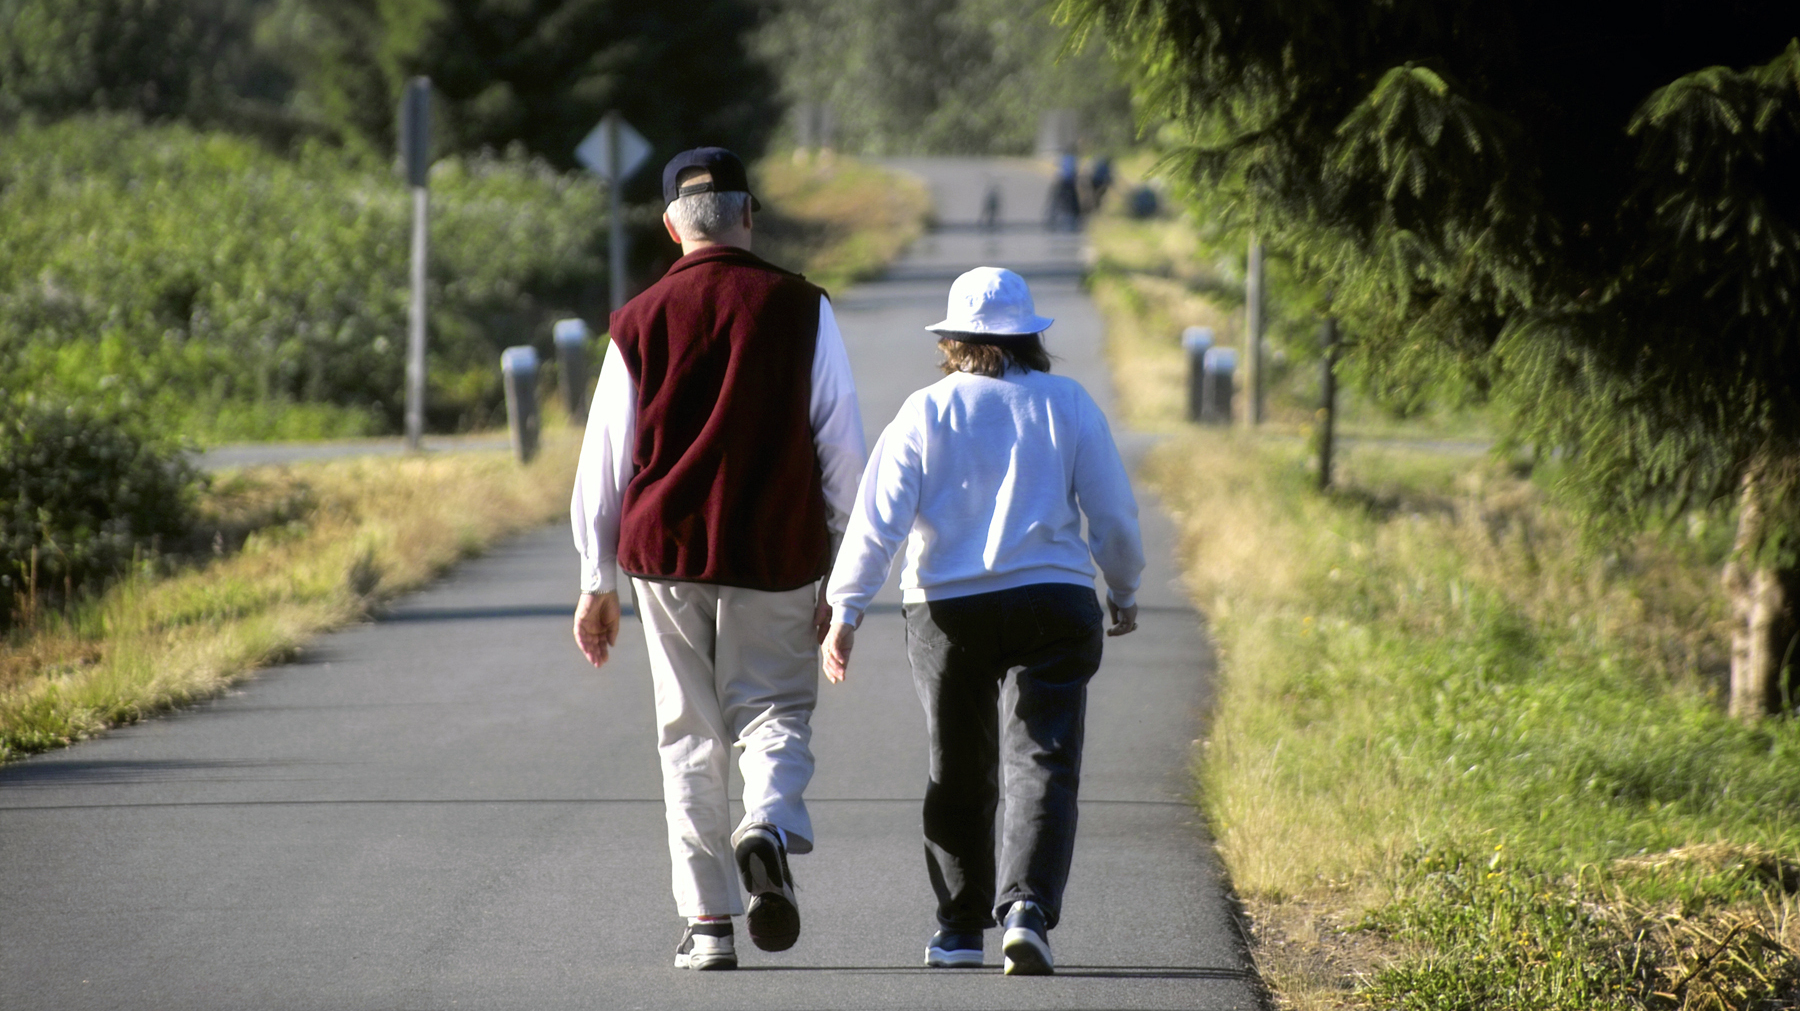 When Older People Walk Now They Stay Independent Later